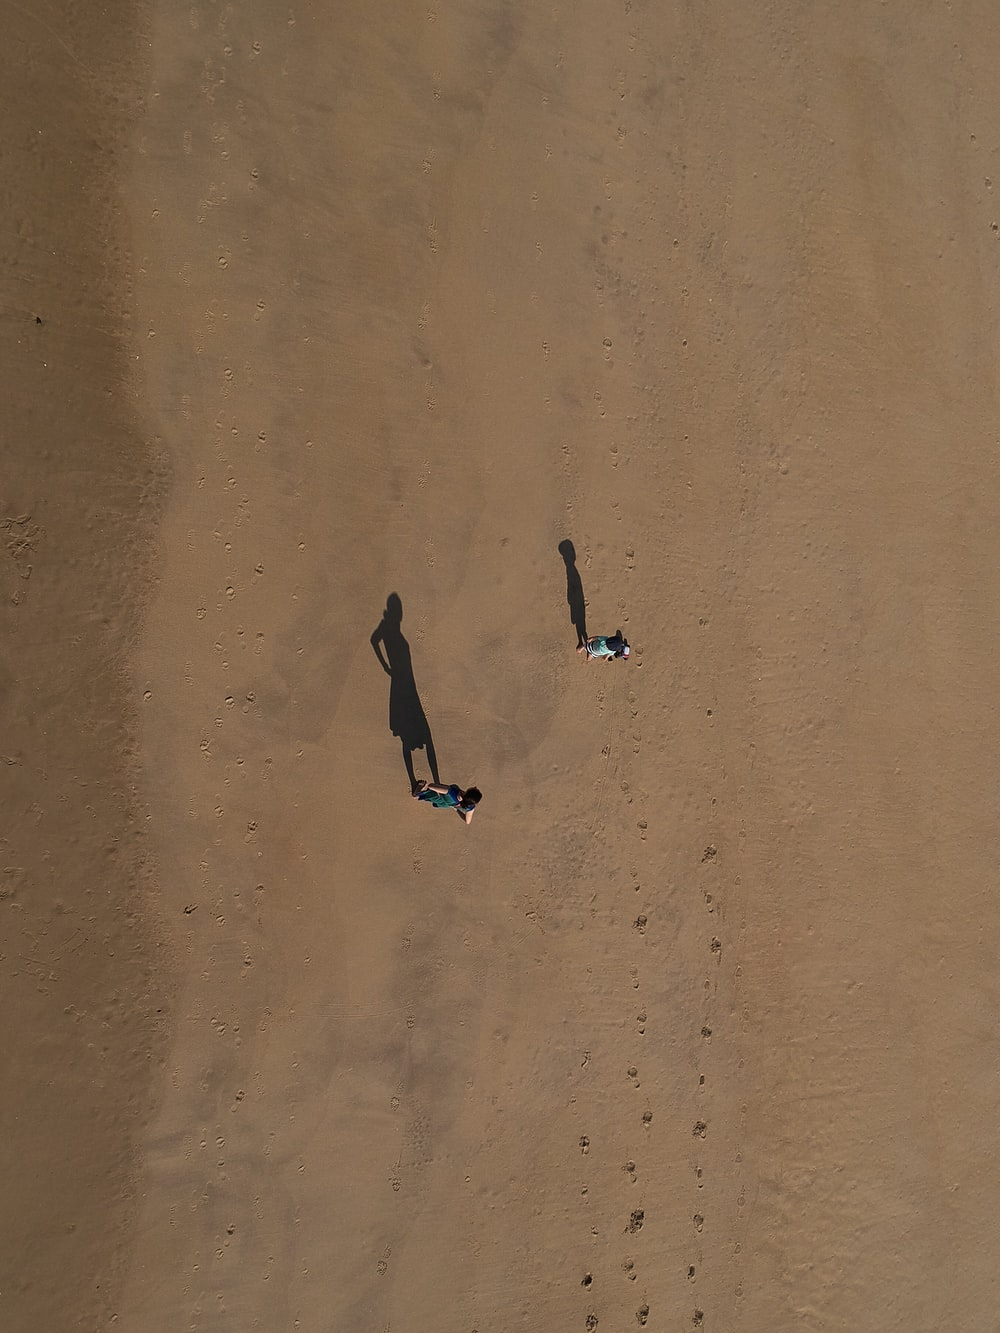 two person standing on desert at daytime